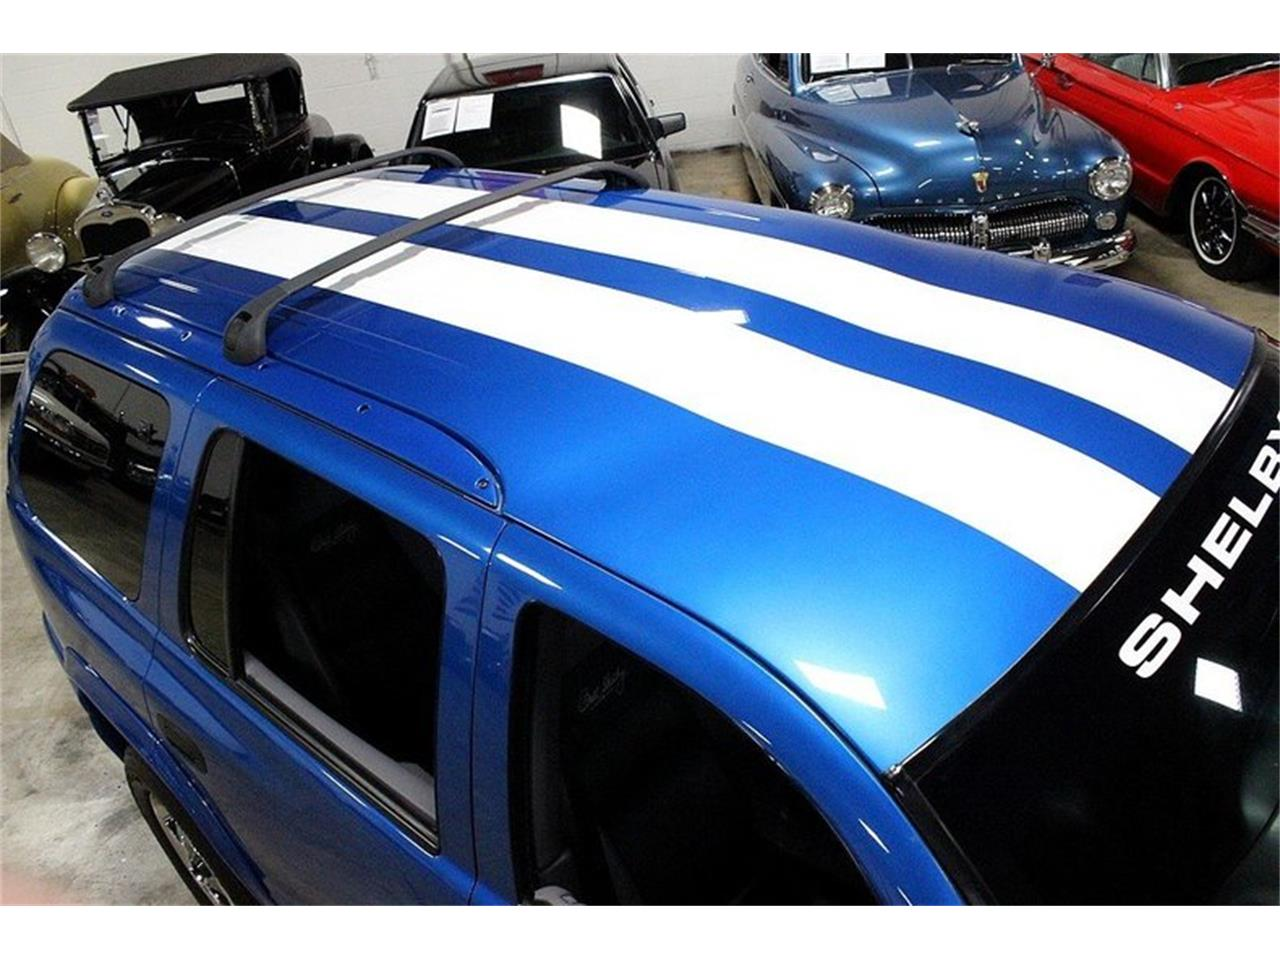 Large Picture of '99 Dodge Durango Shelby SP-360 located in Michigan Offered by GR Auto Gallery - MB1Y